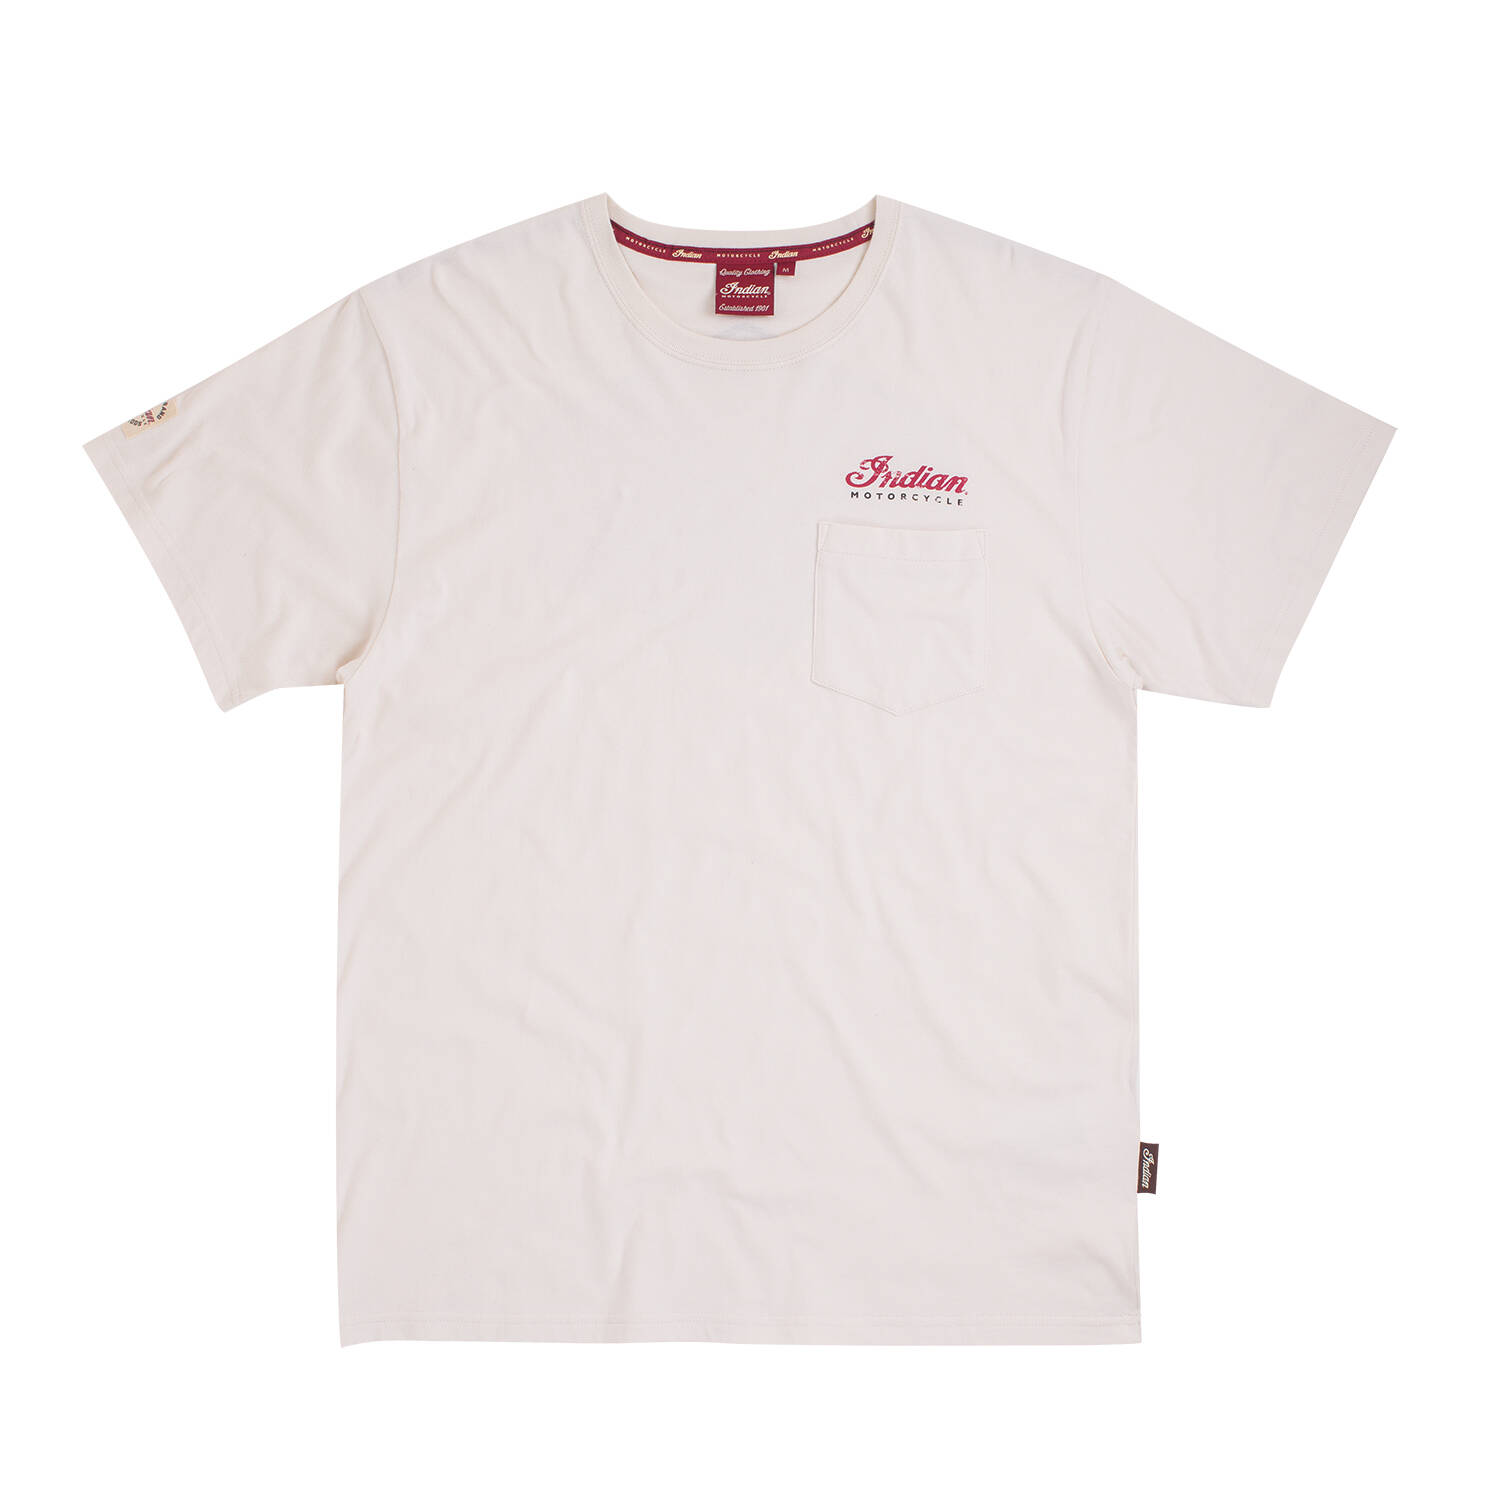 Men's Pocket T-Shirt with Scout Reborn Graphic at Back, White